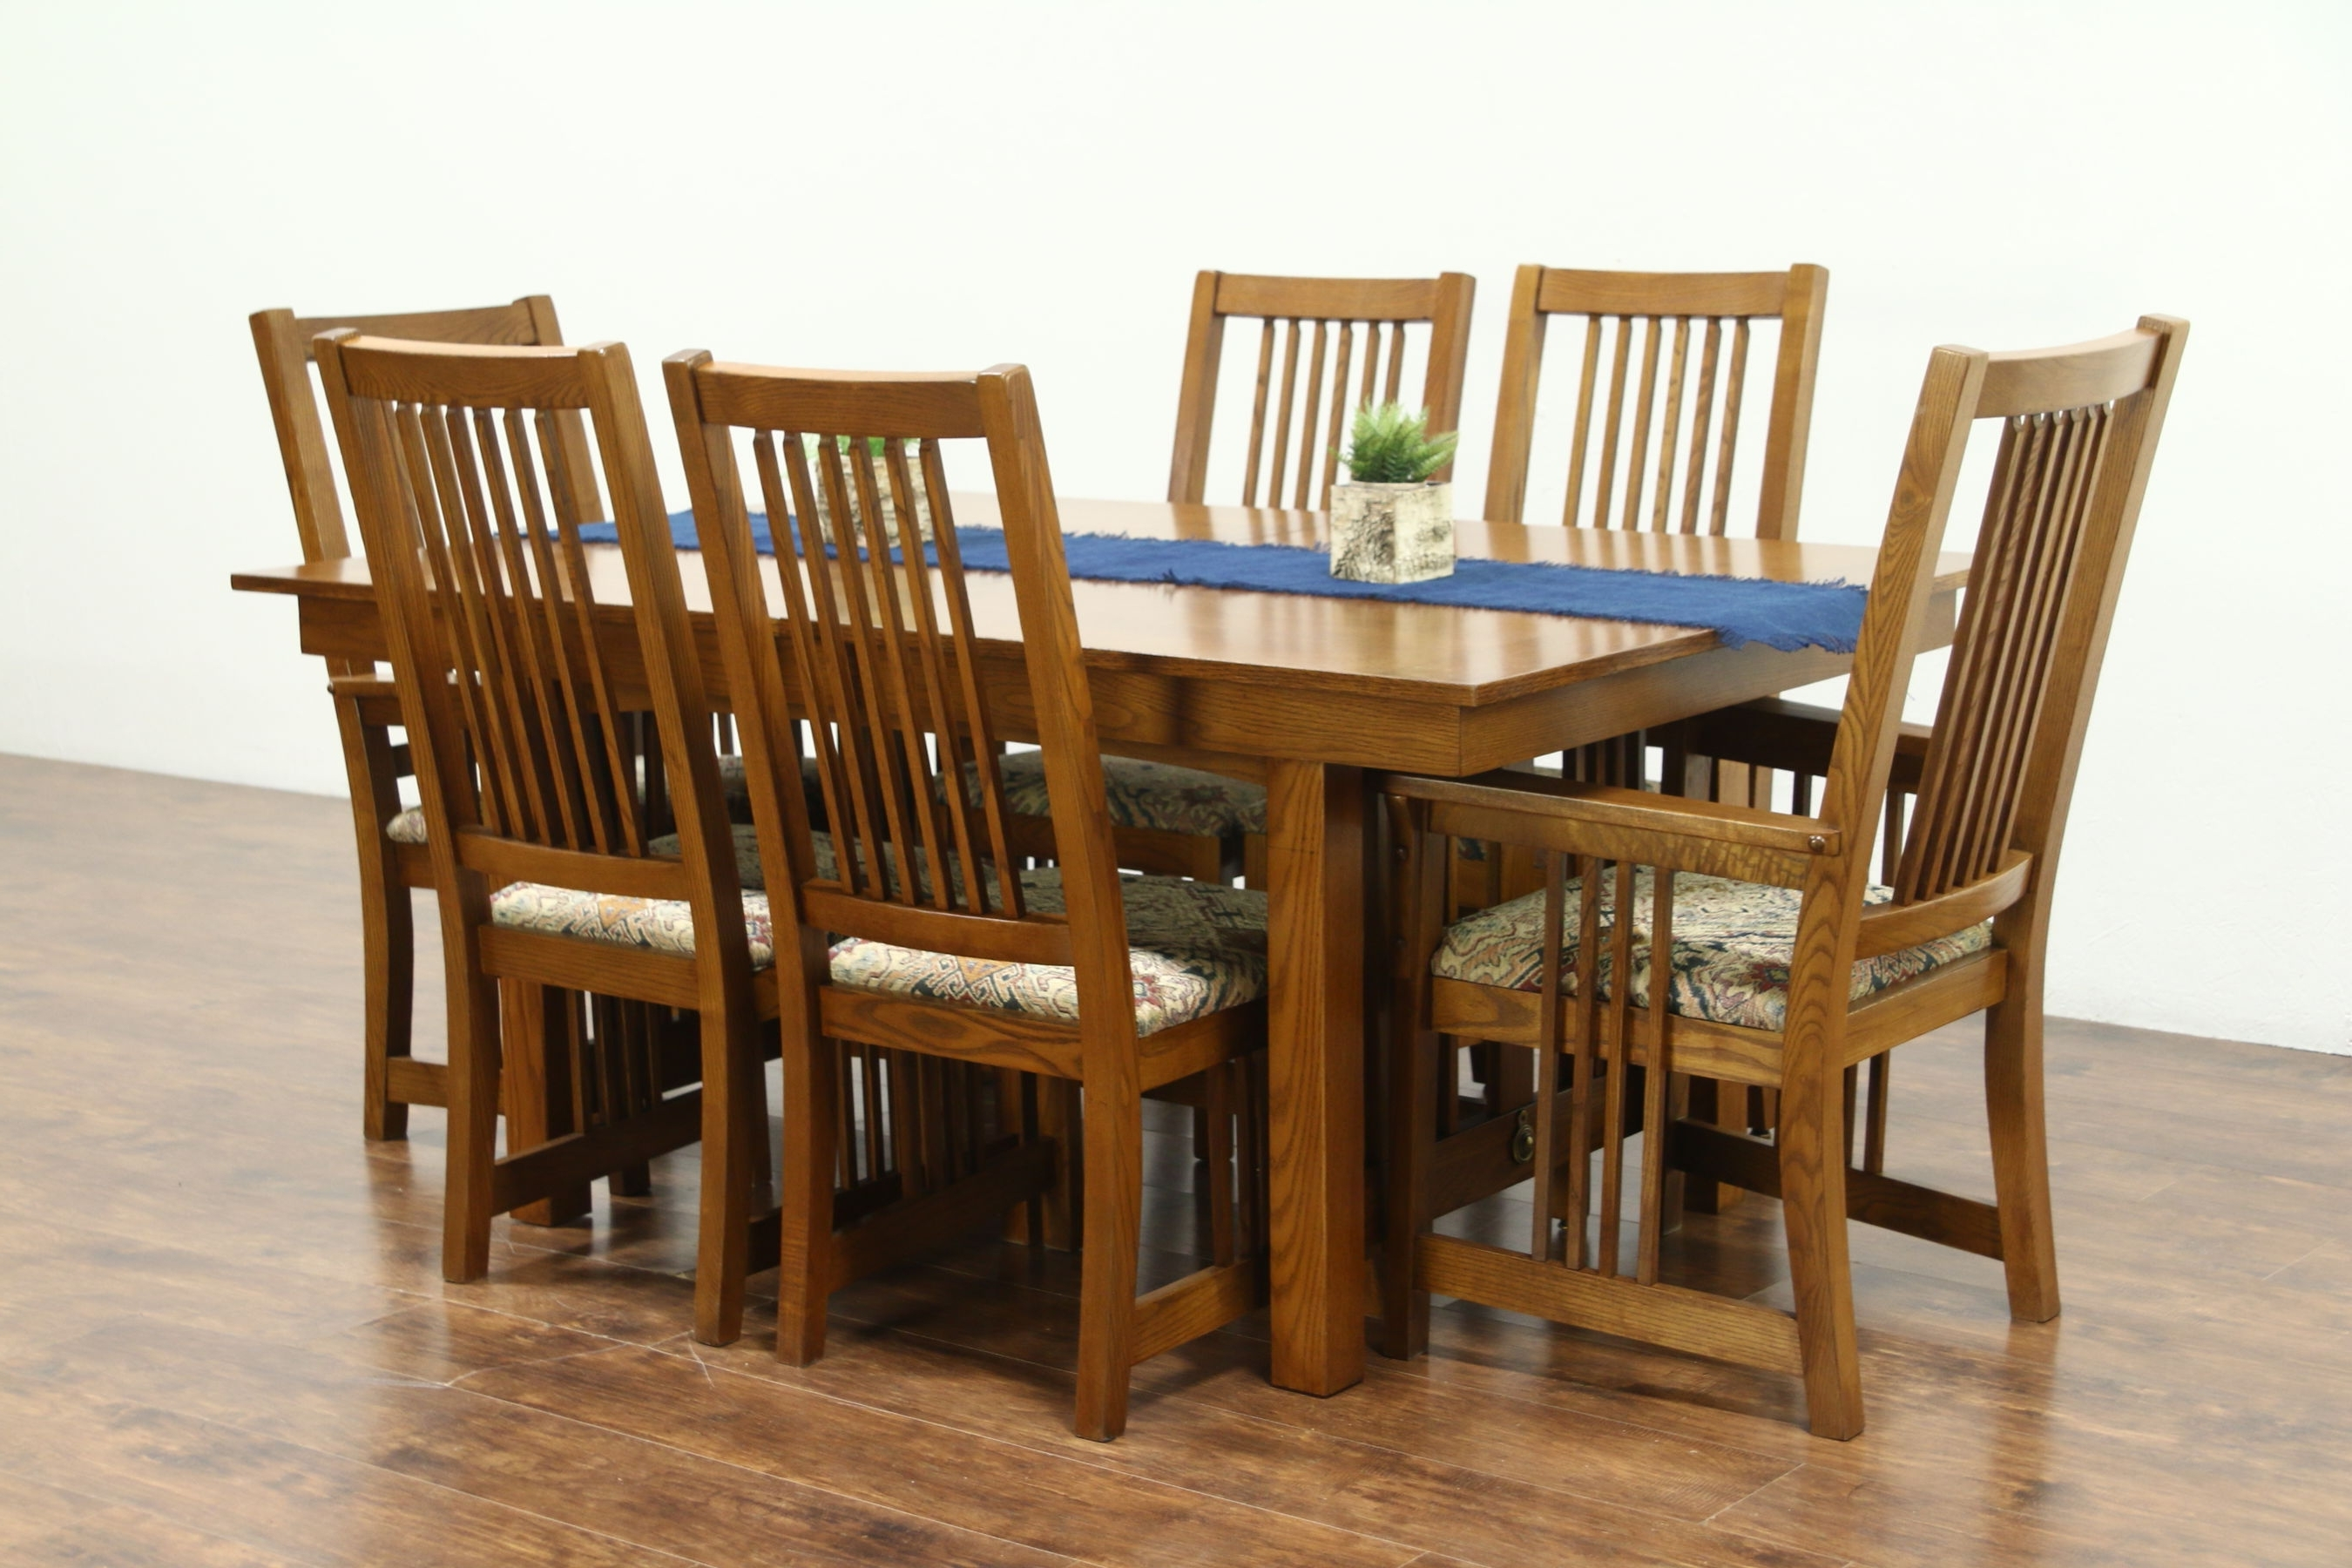 Sold – Prairie Or Craftsman Vintage Oak Dining Set, Table, 2 Leaves Pertaining To Fashionable Craftsman Side Chairs (View 15 of 20)